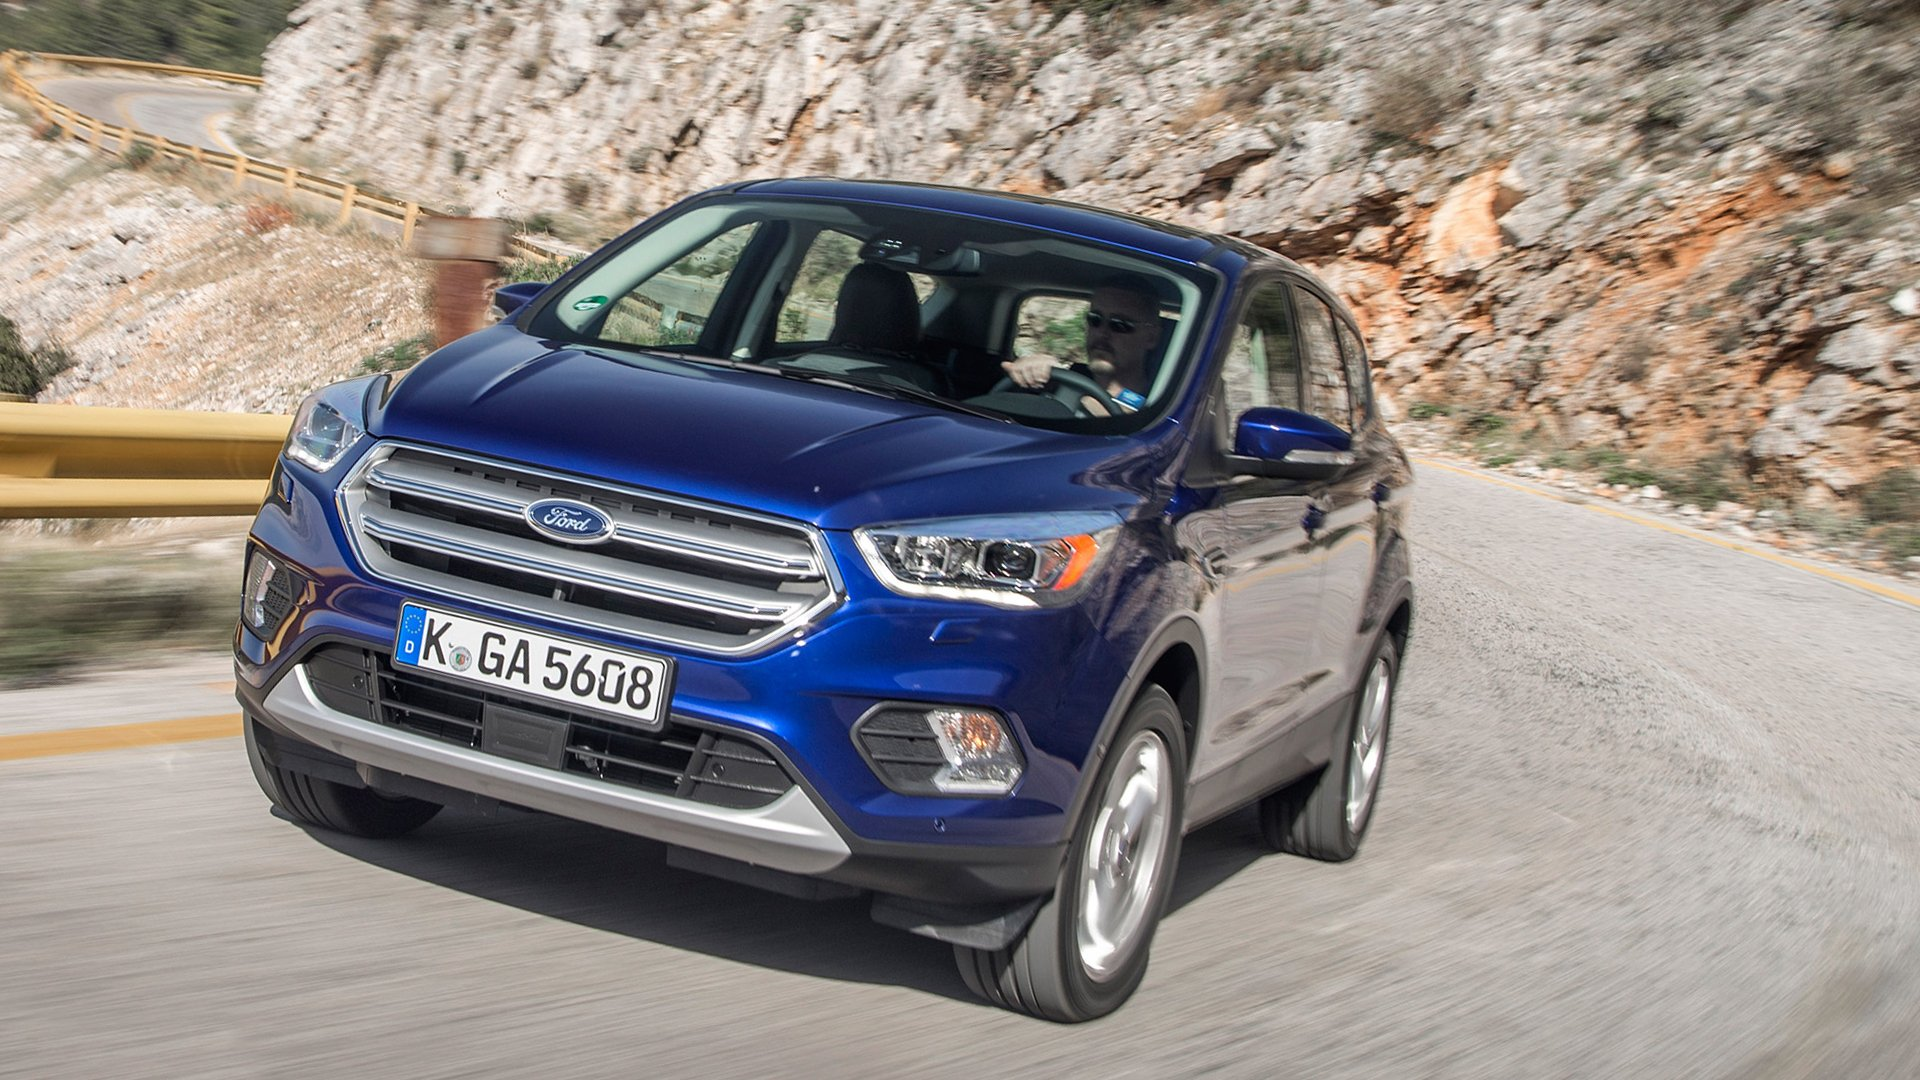 New 2019 Ford Kuga Test Drive On Road